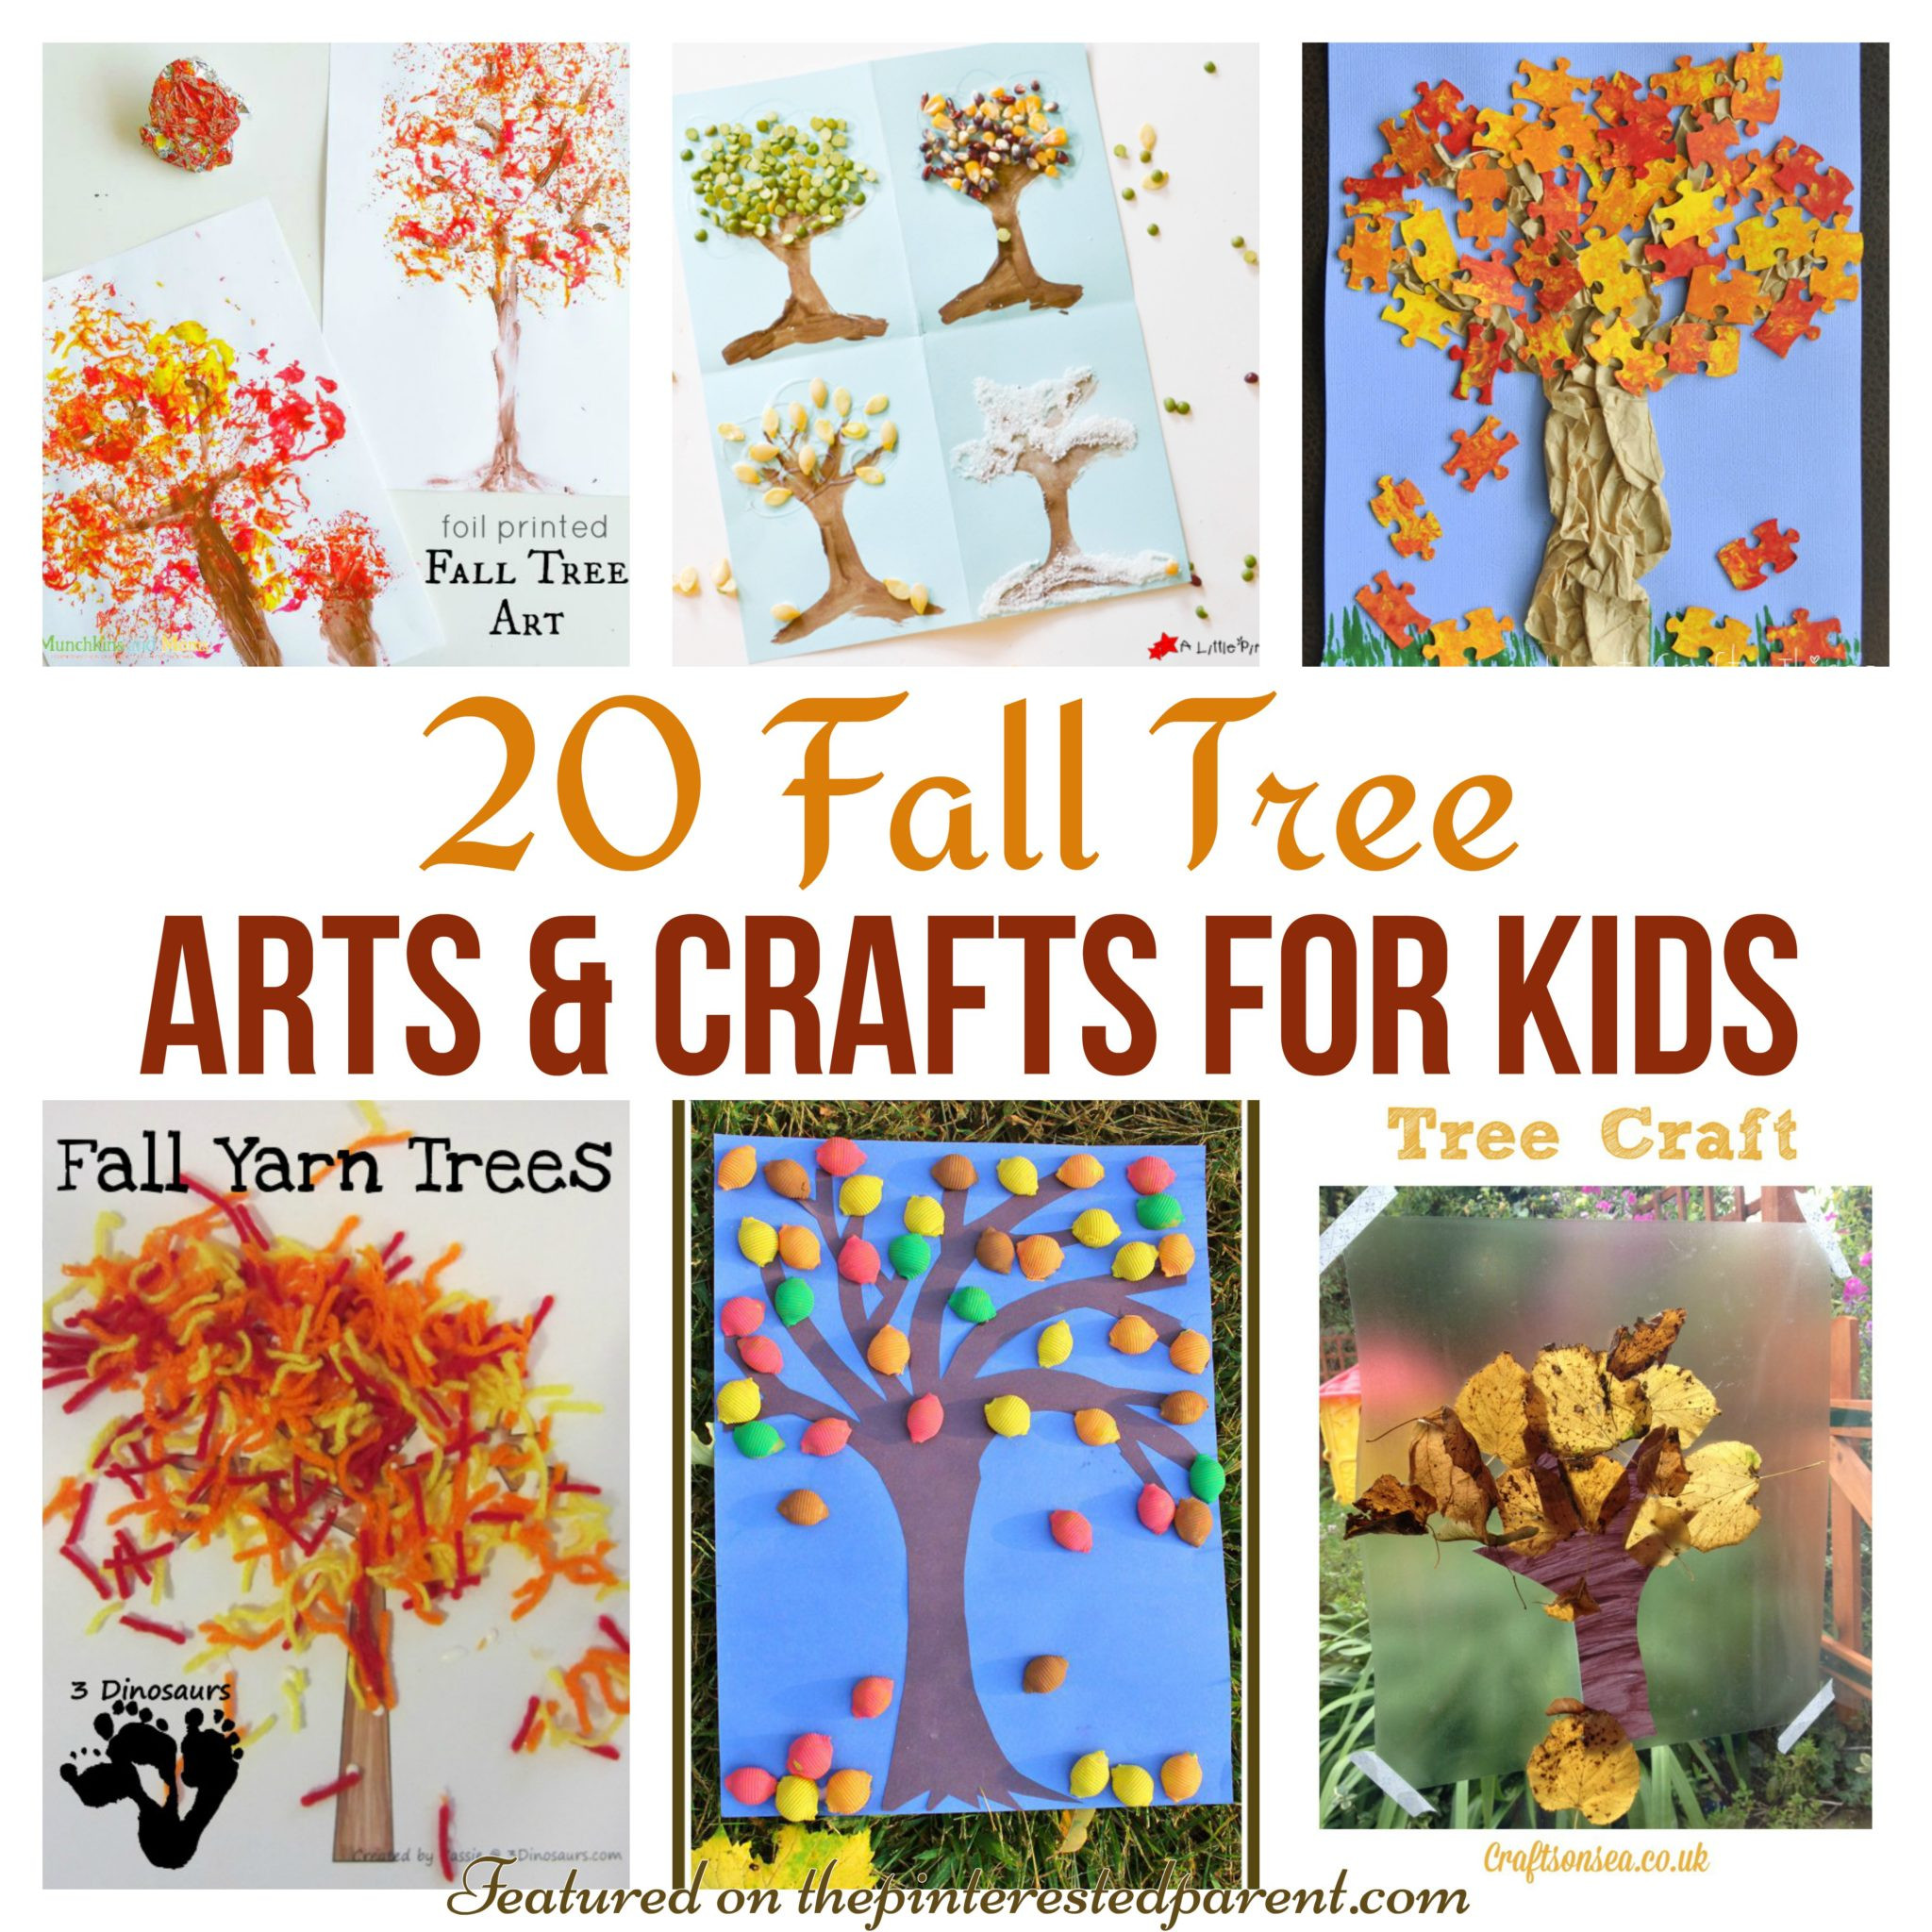 Toddler Arts And Craft Ideas  20 Fall Tree Arts & Crafts Ideas For Kids – The